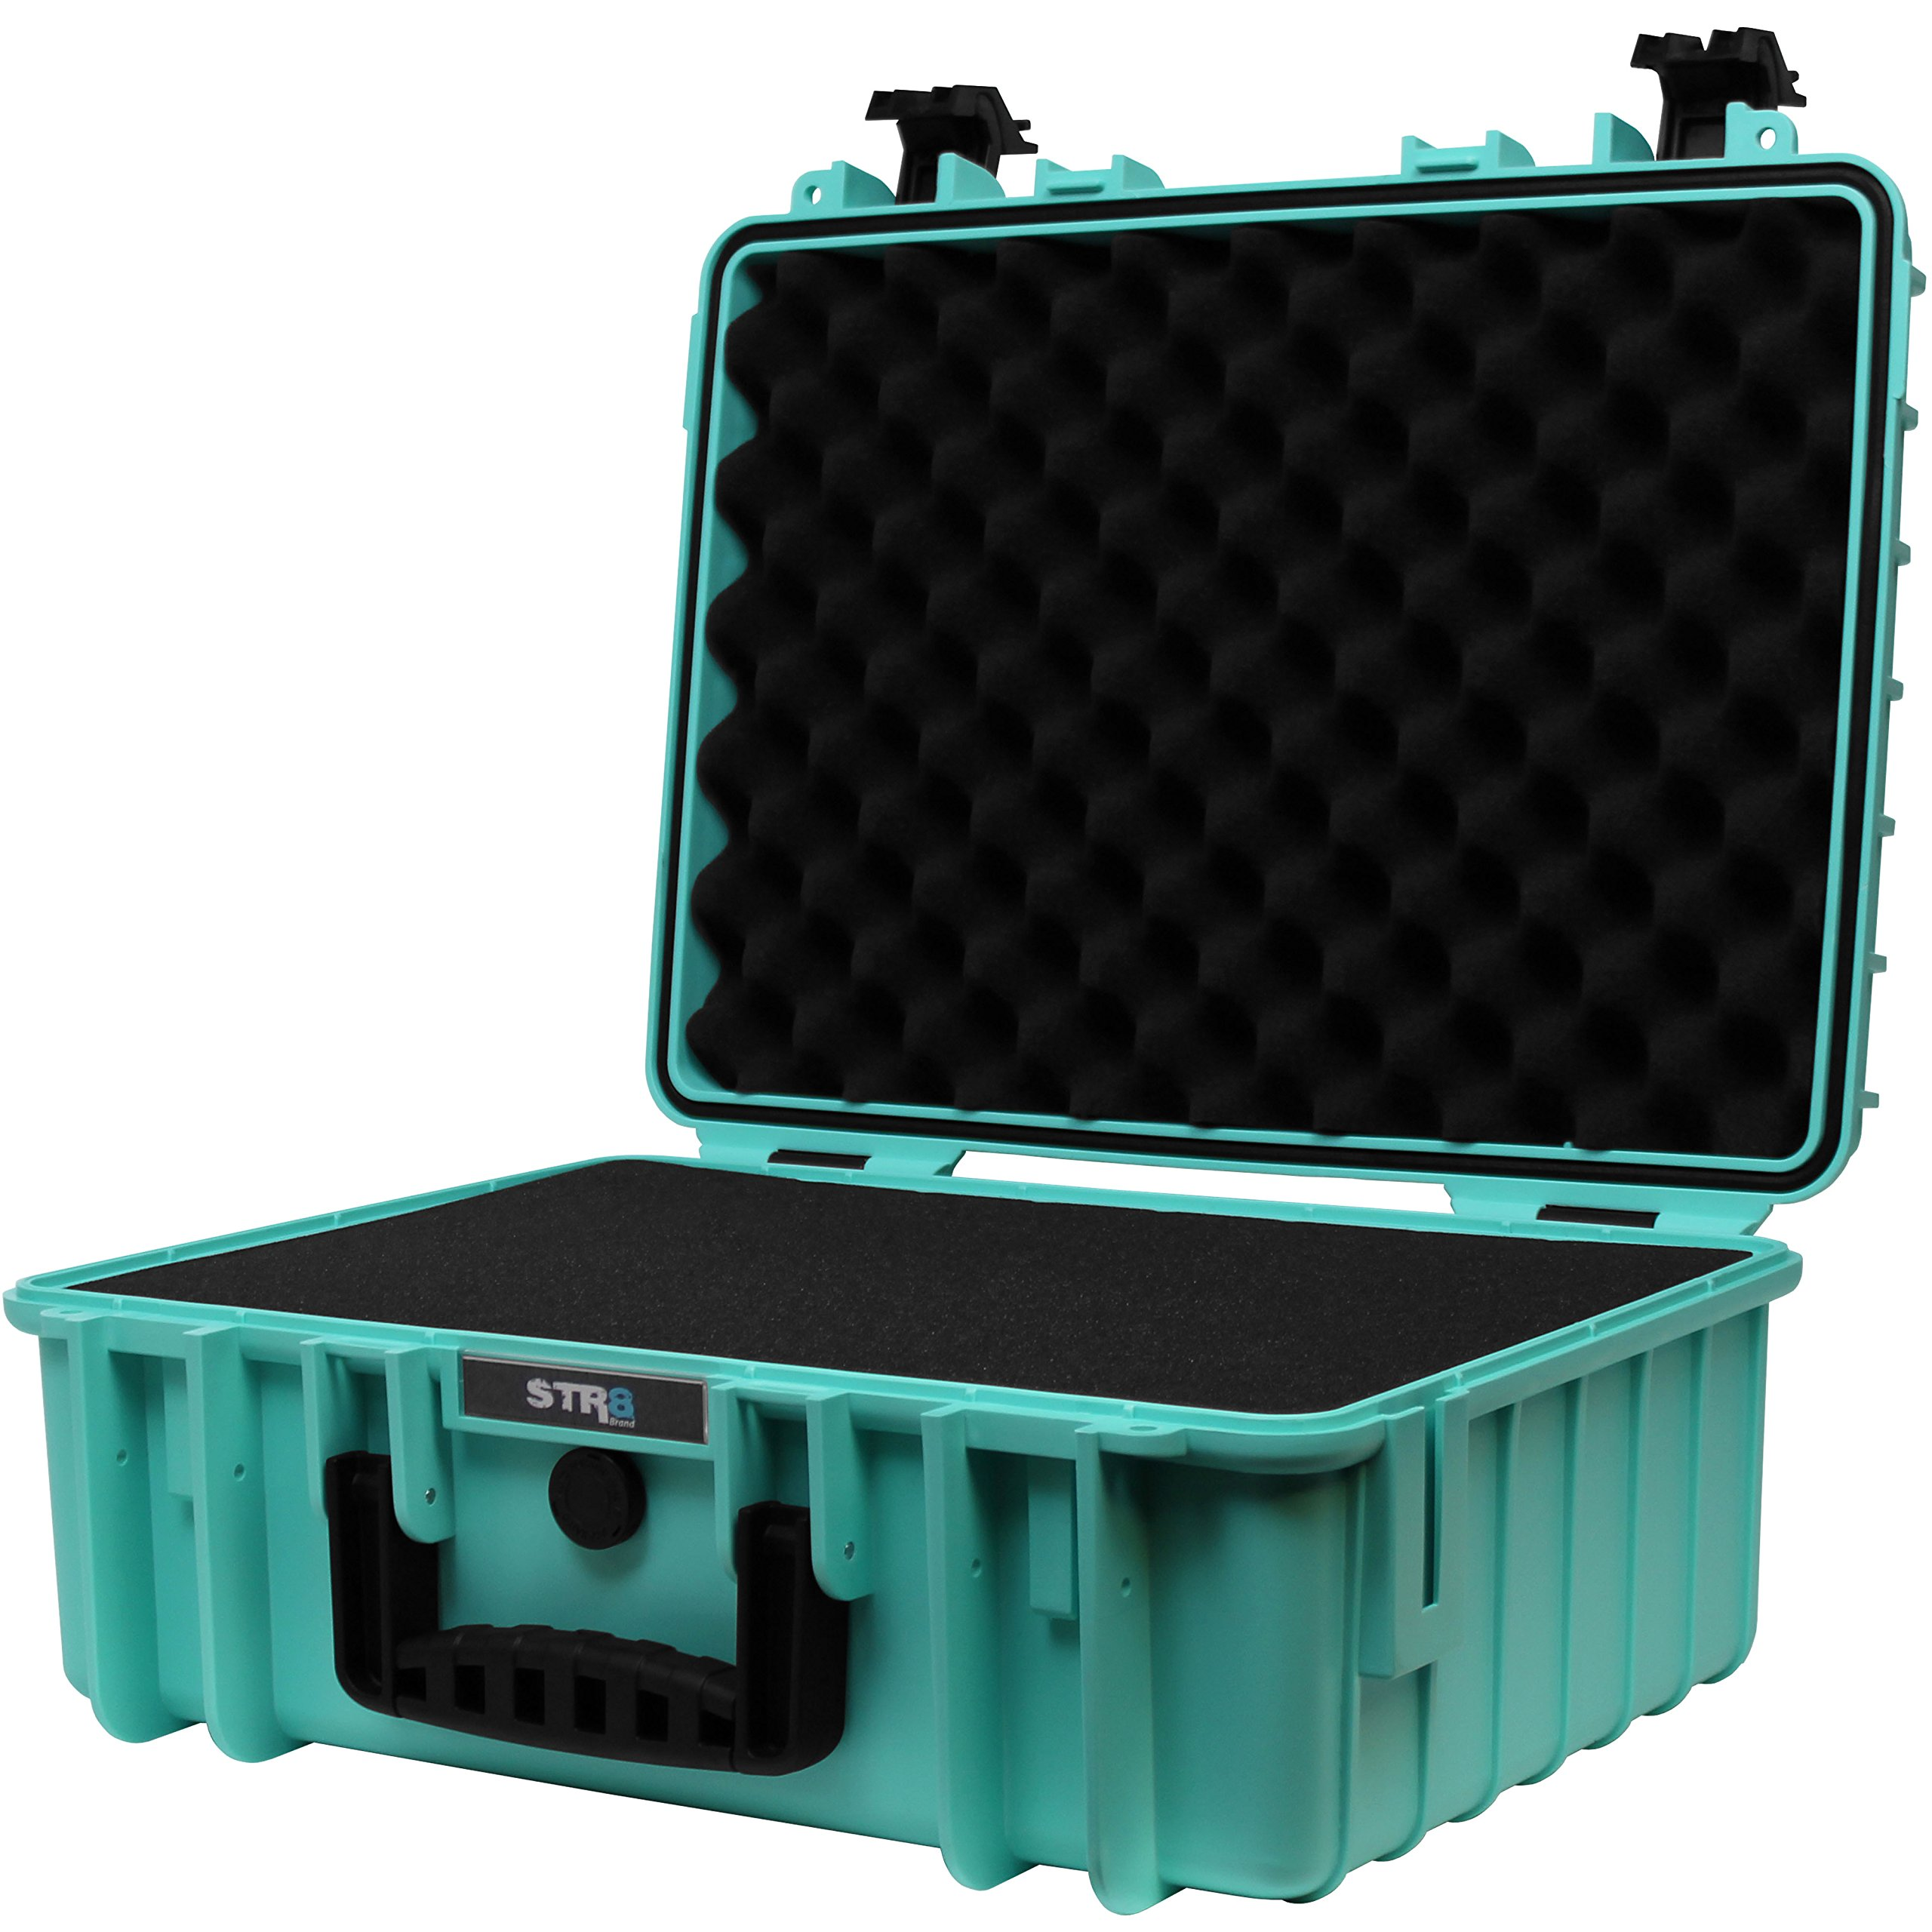 STR8Brand 17'' Weather Resistant, Smellproof, Lockable, Glass Protector, Outdoor Carrying Case for Multi-Purpose with Pluck Foam (STR8 Teal) - STR8 Brand